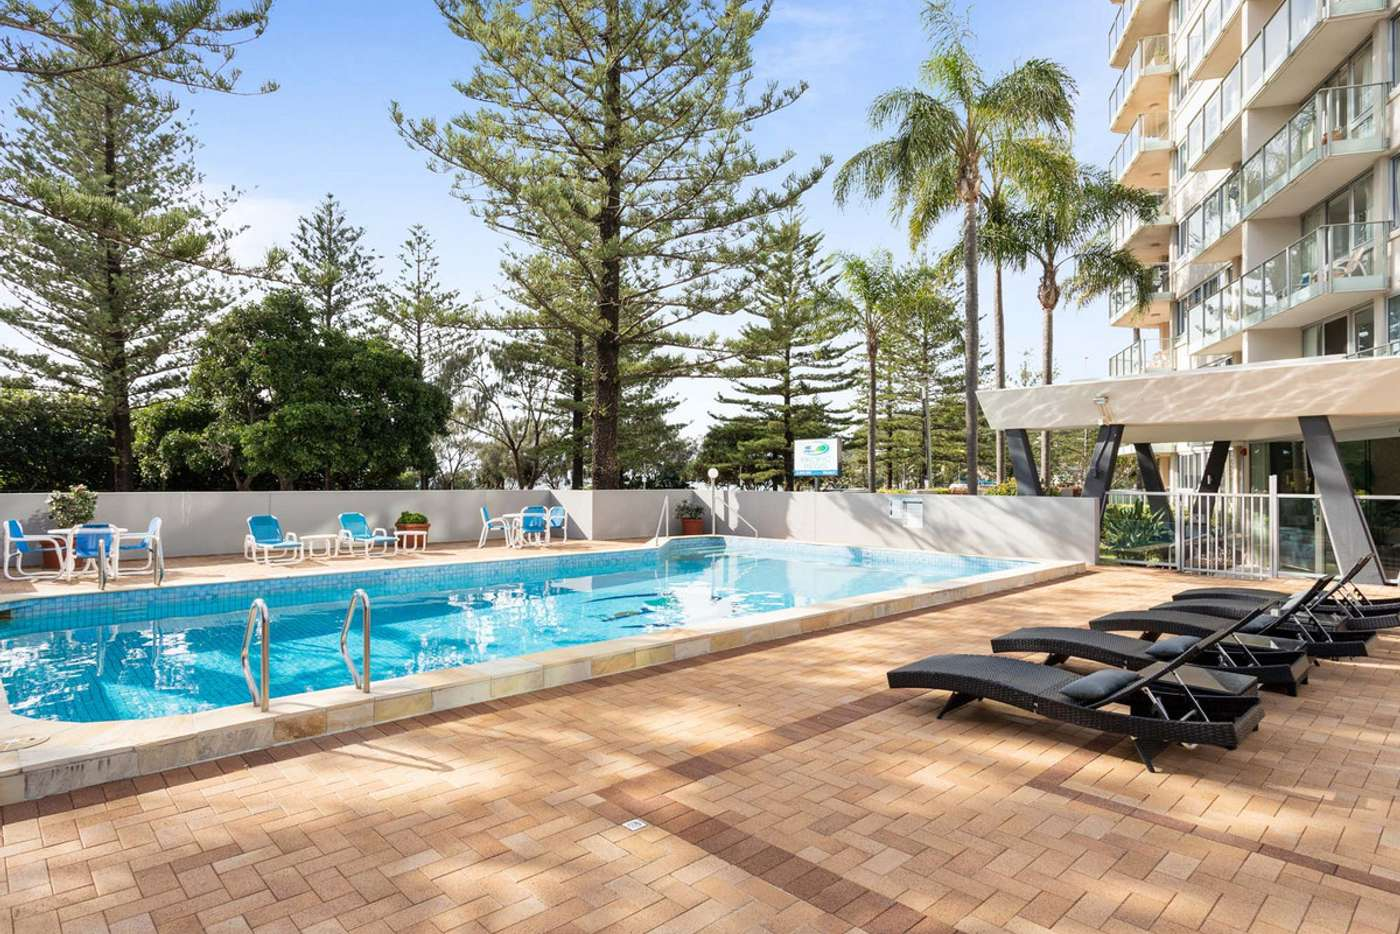 Main view of Homely apartment listing, 6/30 The Esplanade, Burleigh Heads QLD 4220